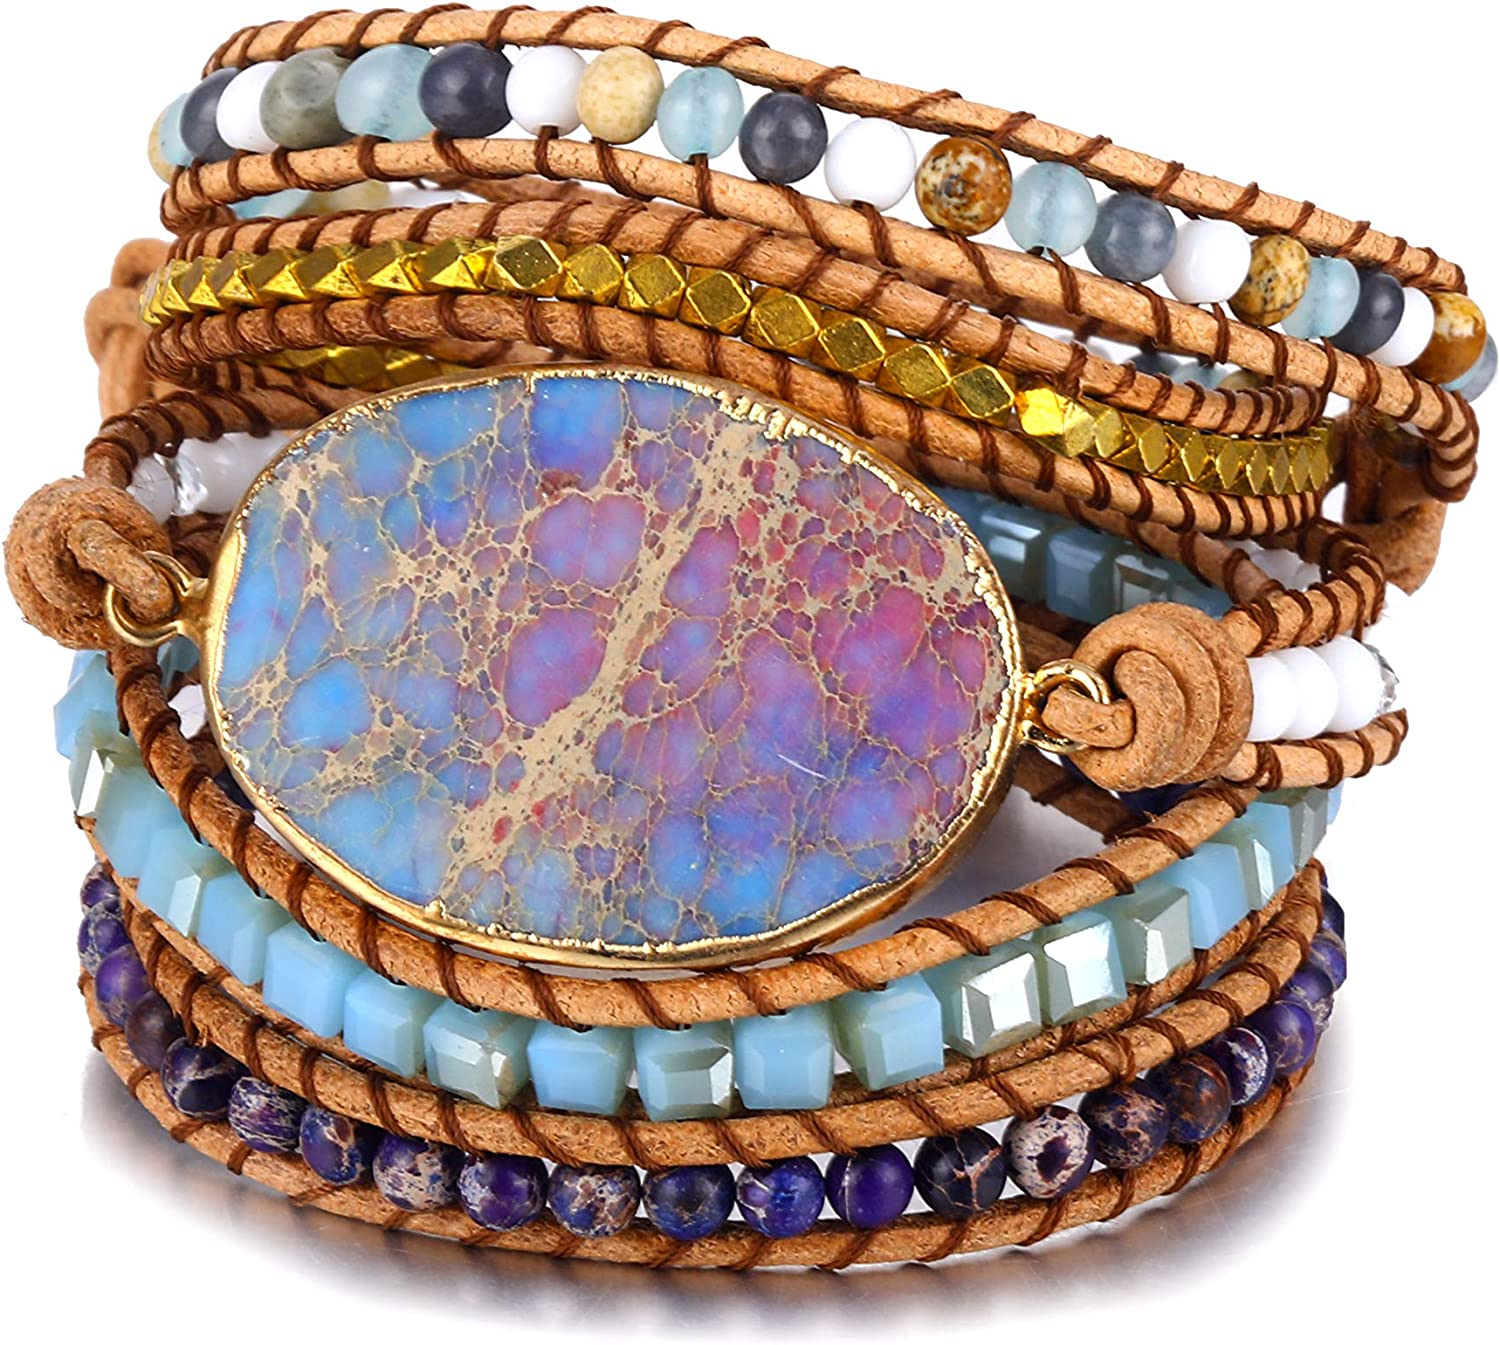 Gold stainless steel bracelet gilded hematite beads and stone colori of your choice